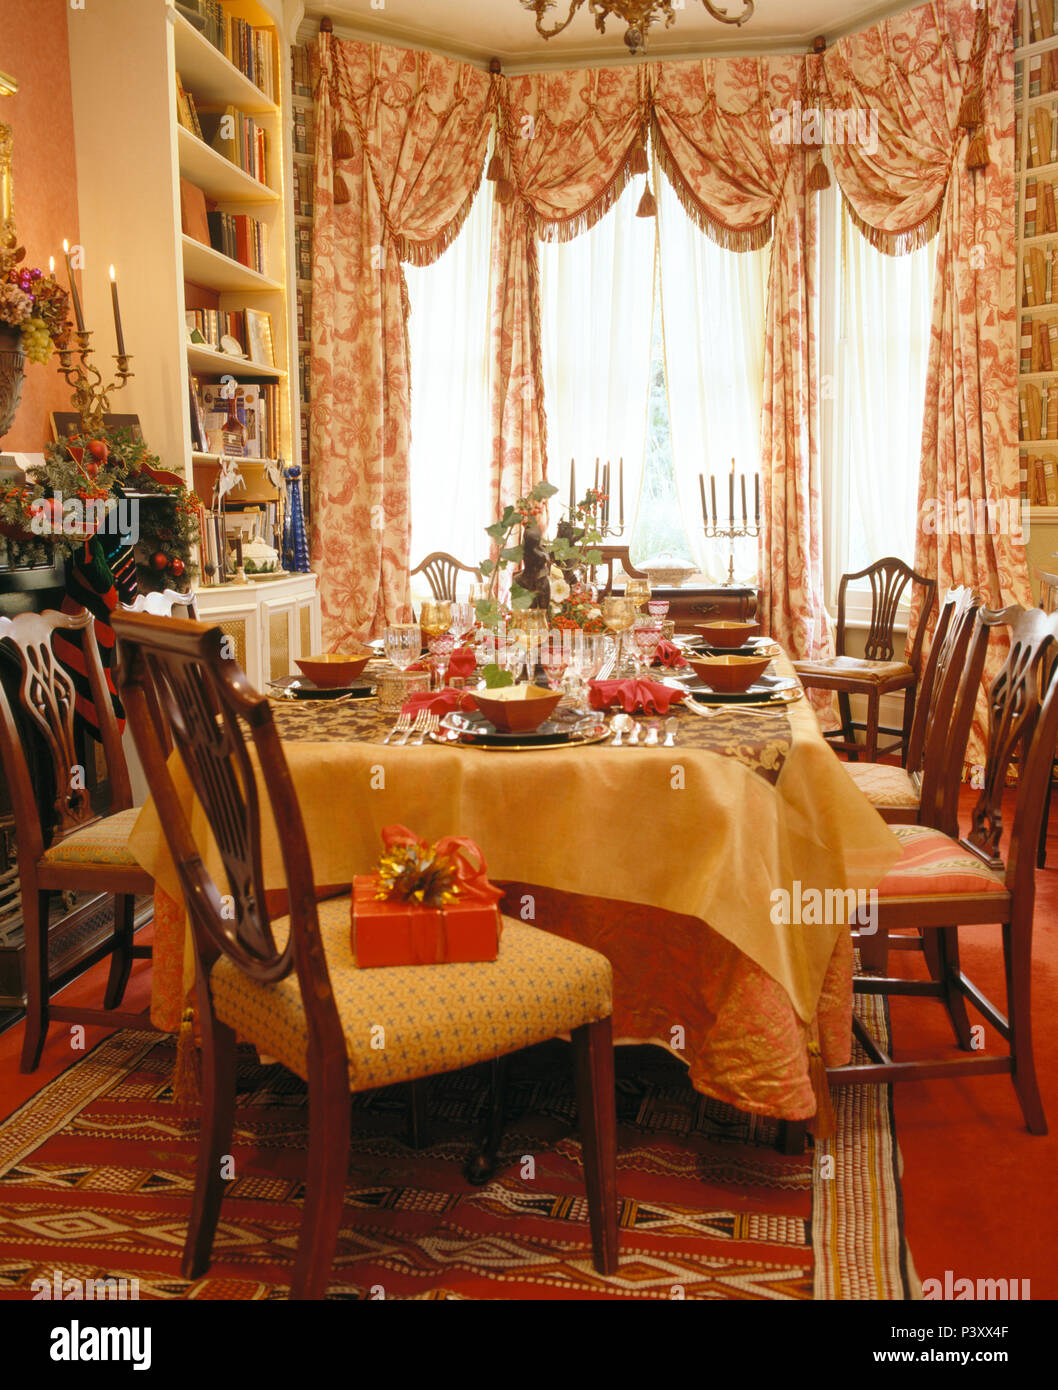 Swagged Patterned Curtains On Windows In Townhouse Dining Room Decorated For Christmas With Table Set Dinner